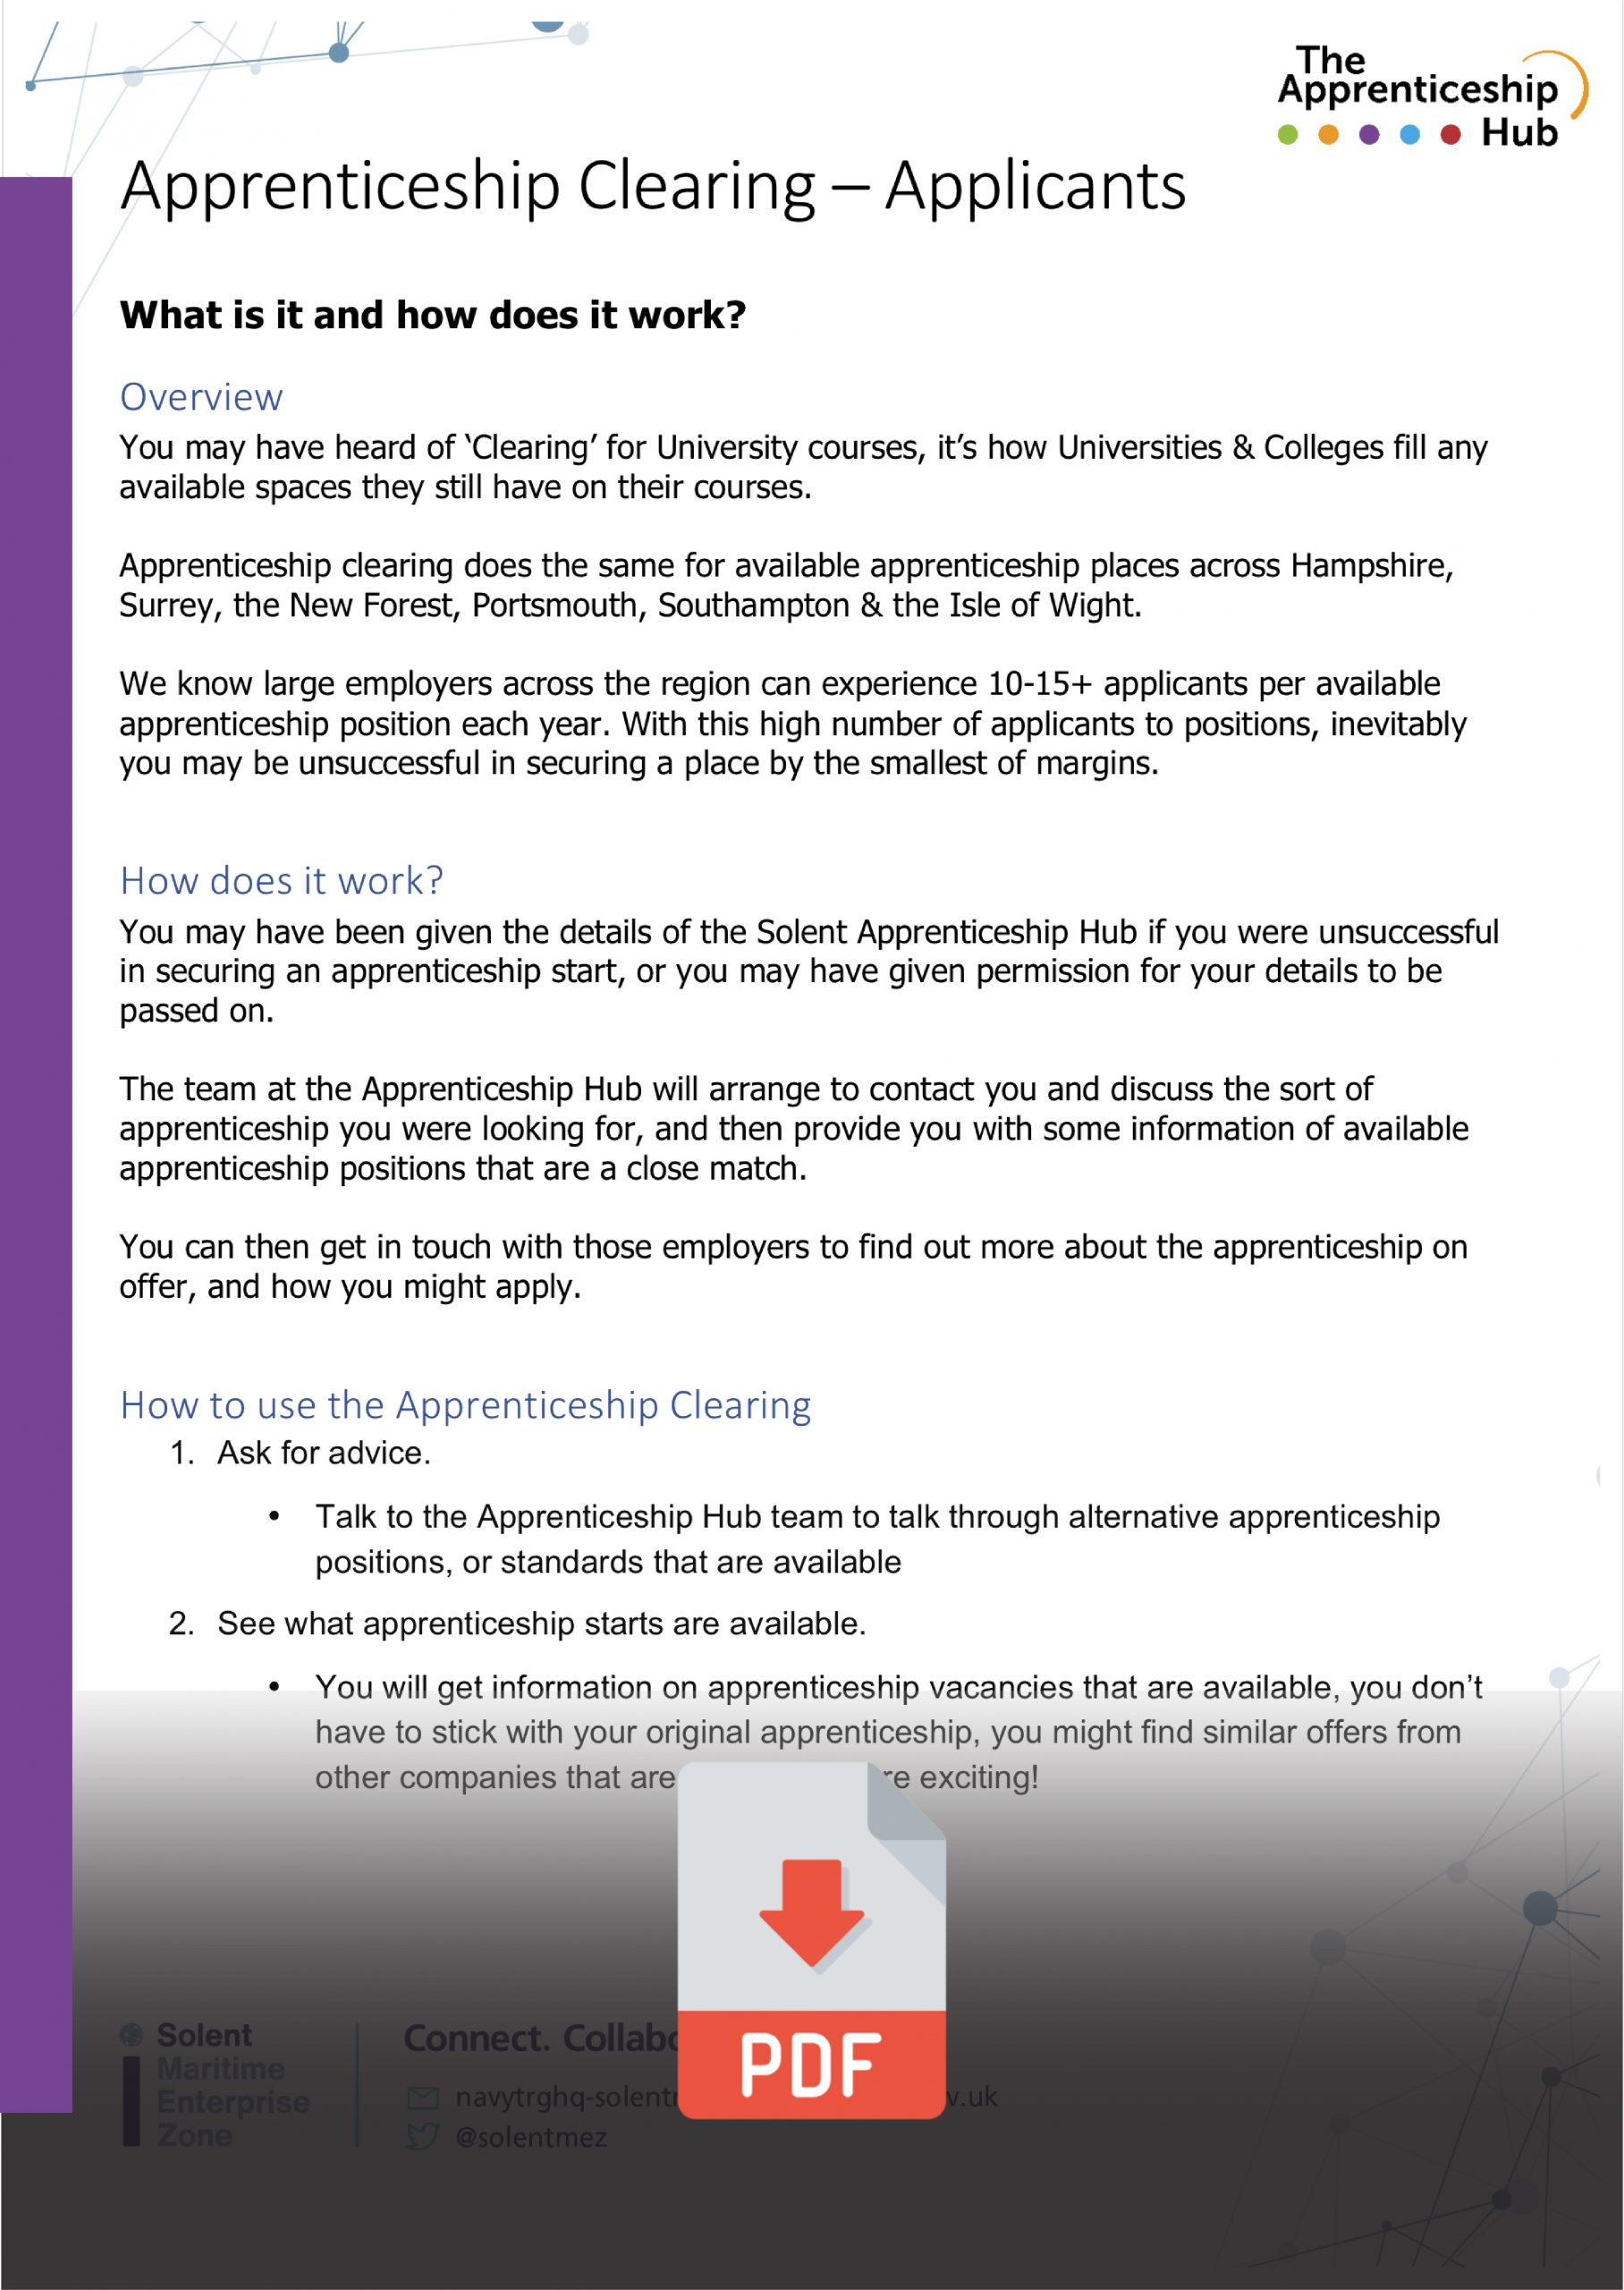 Apprentice Clearing Information Doc